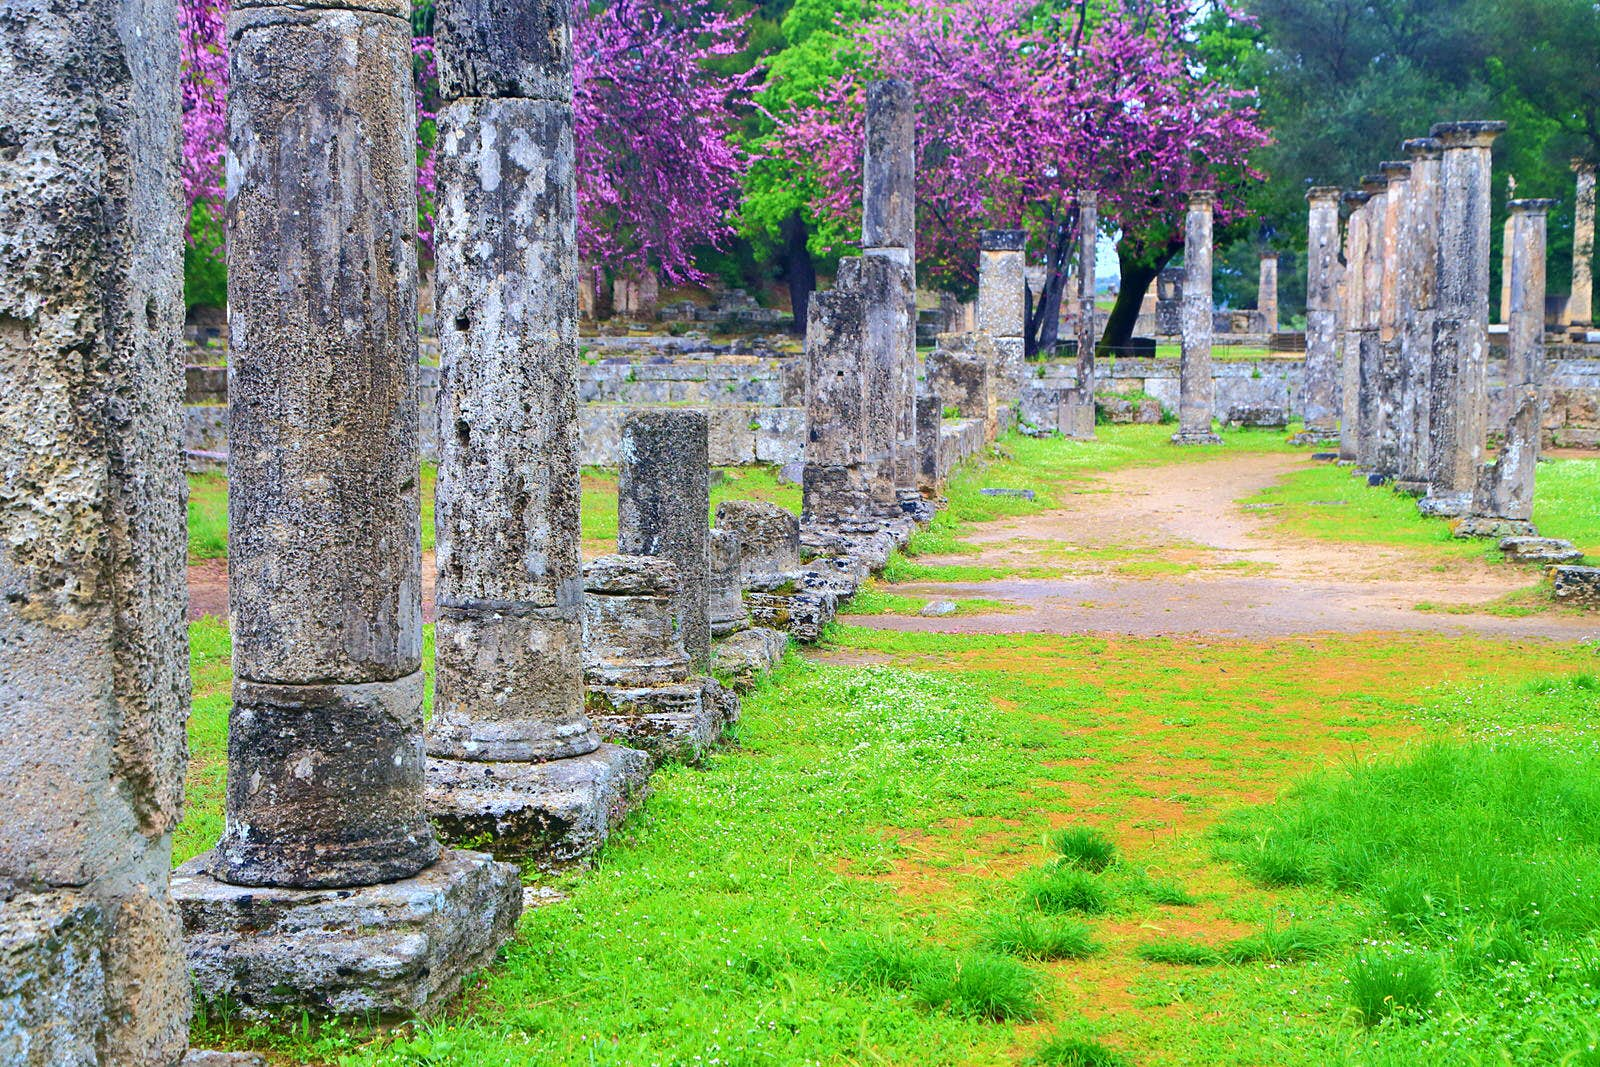 Rows of columns in the sanctuary of Zeus, Ancient Olympia © Inu / Shutterstock